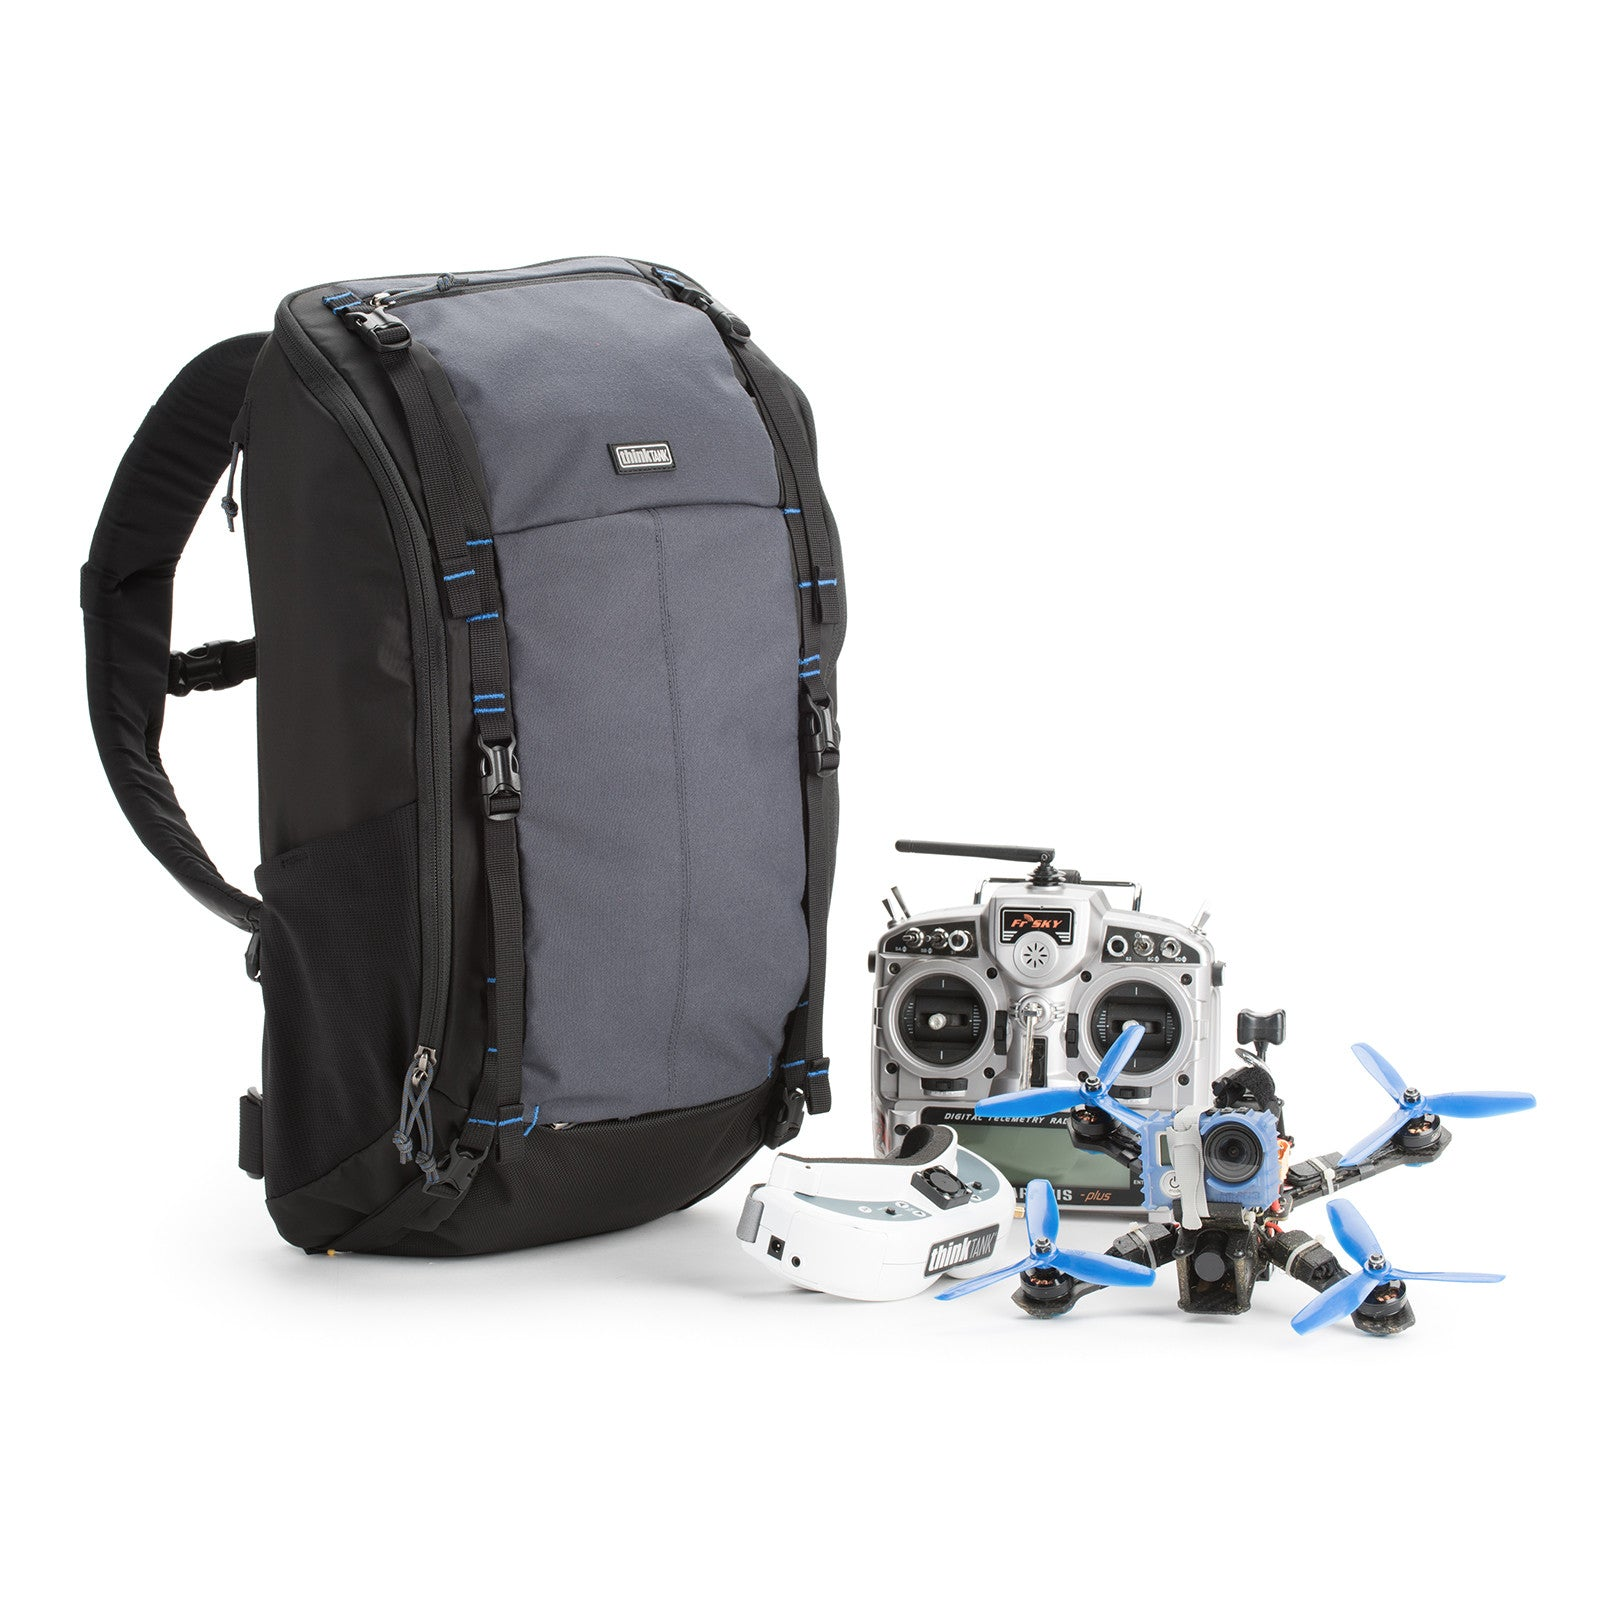 Fits 2-3 drones on the front of the backpack or with props removed, 2-3 on the inside of the backpack